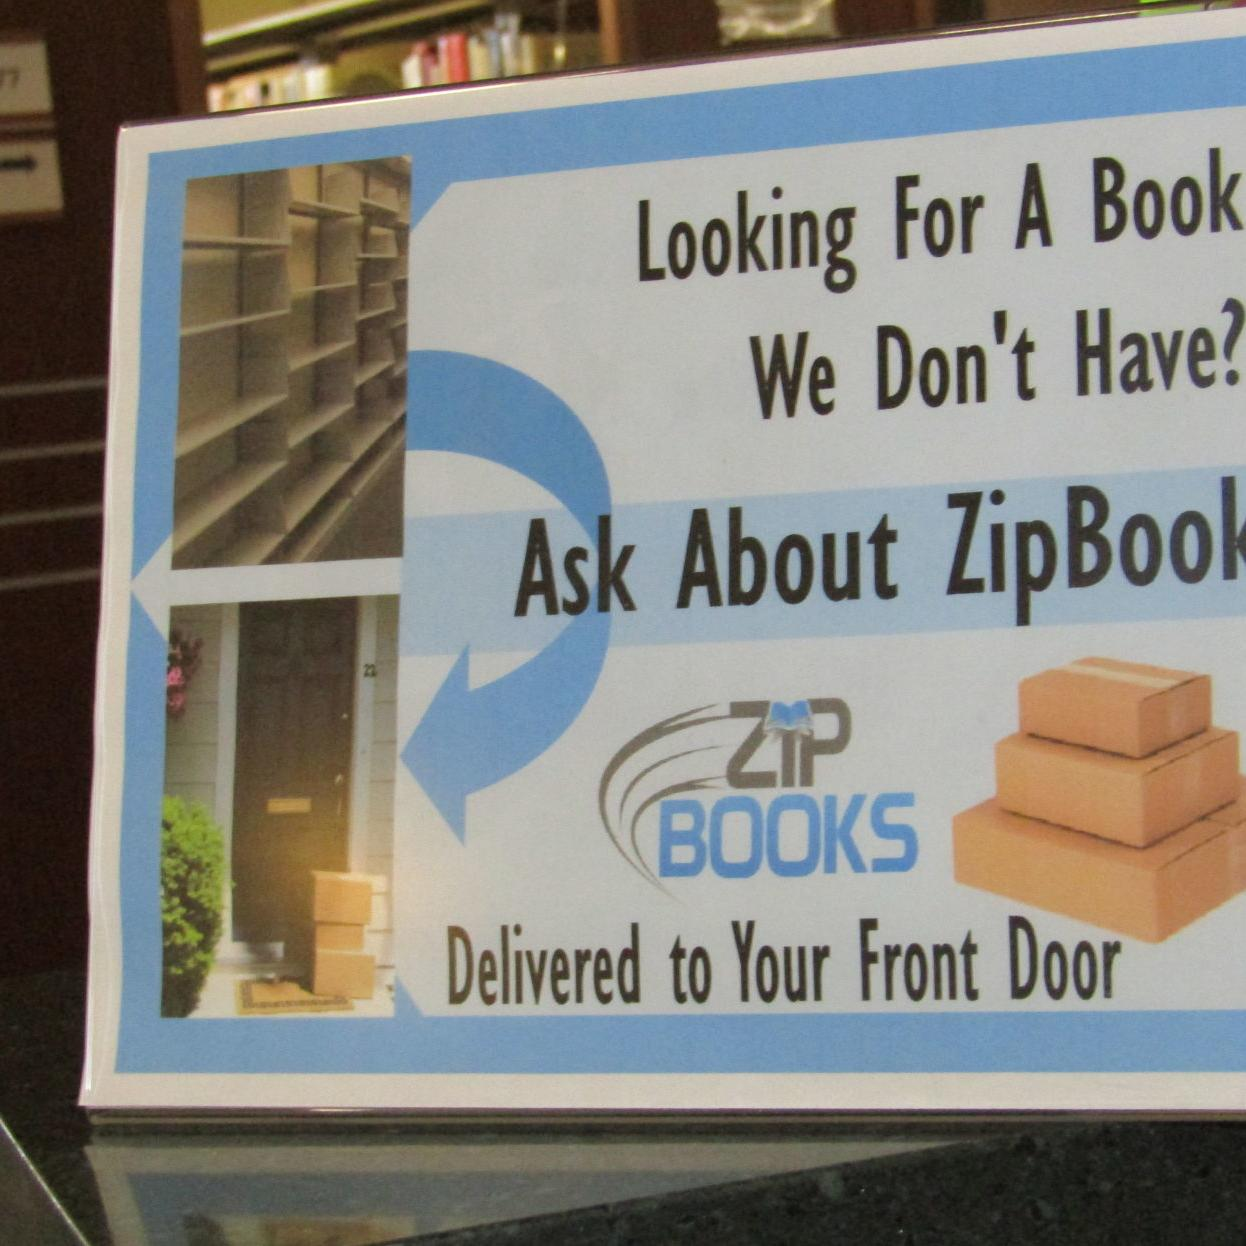 Zip Books: Library looks to expand use by shipping audio